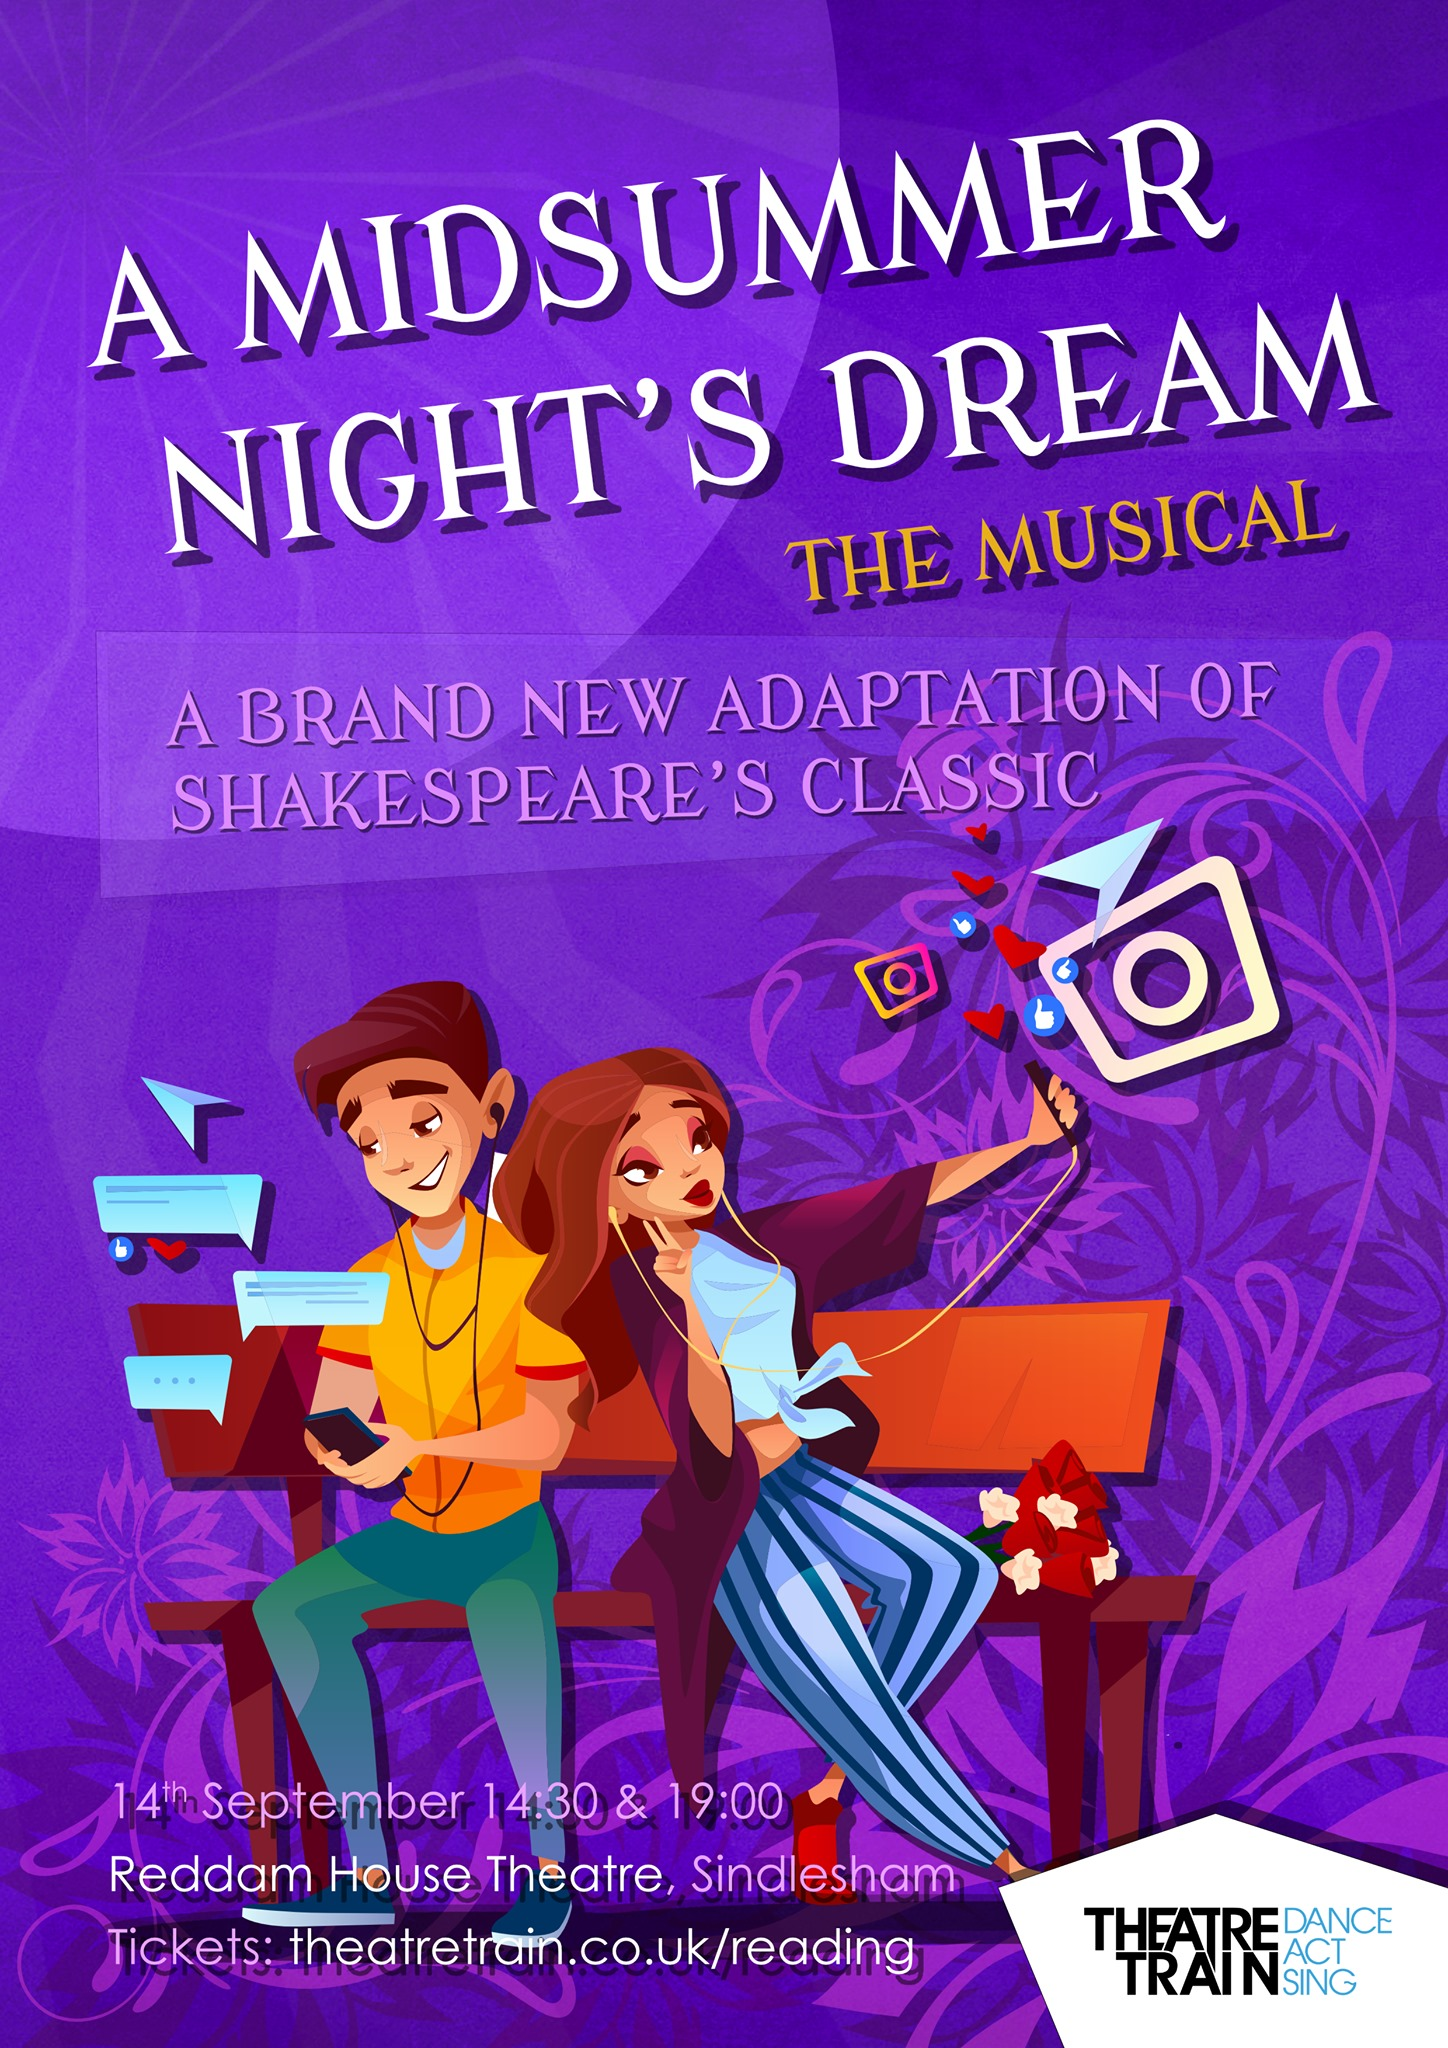 A Midsummer Night's Dream: The Musical featuring West End Professionals and Theatretrain Reading